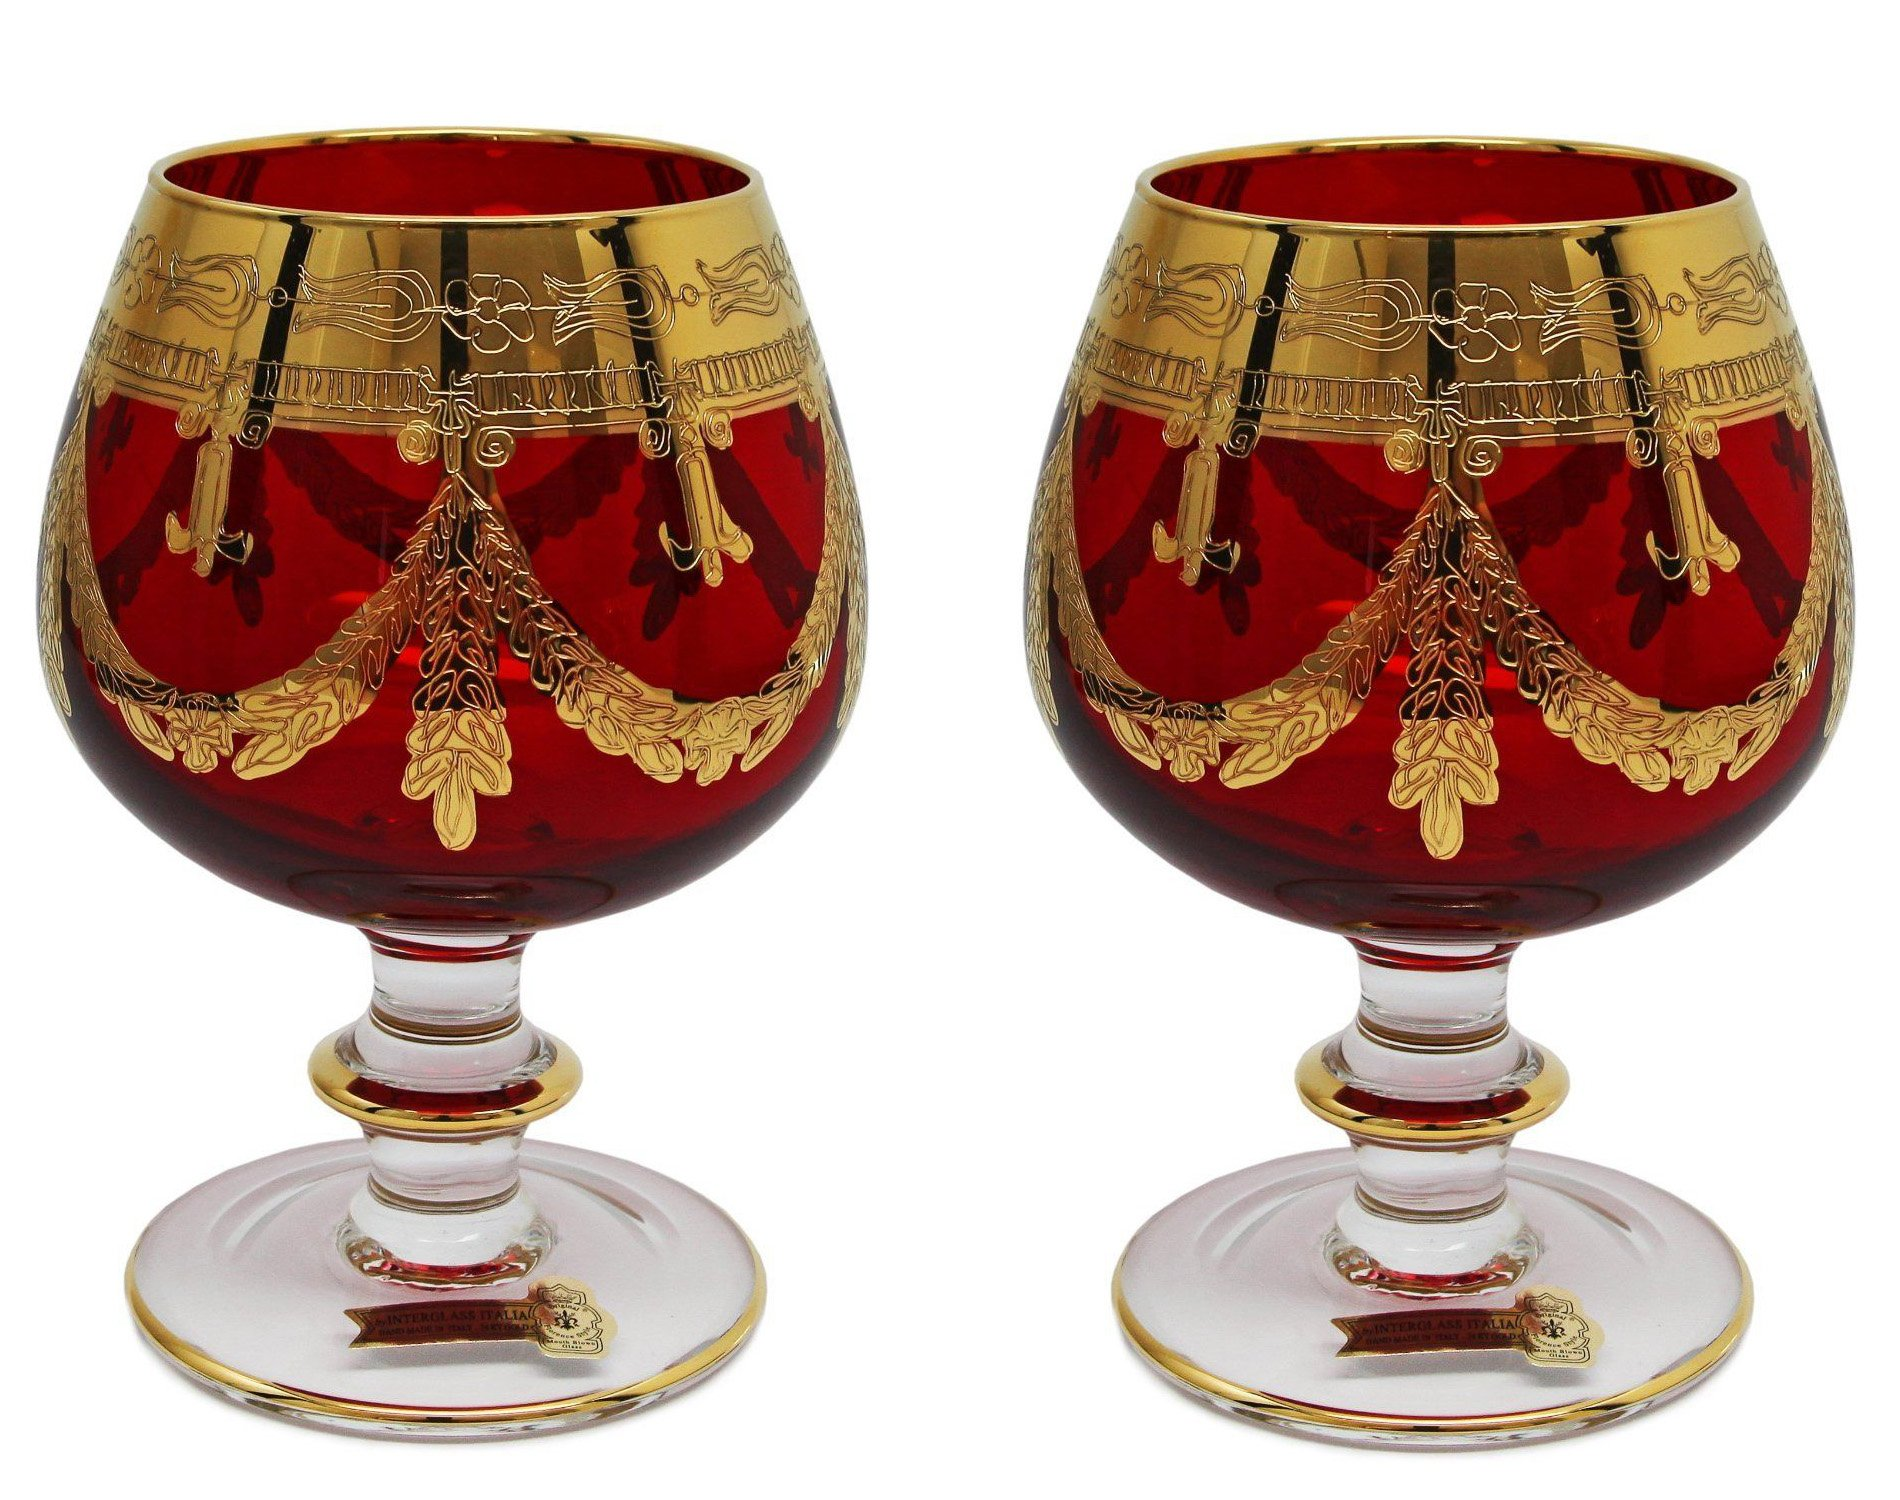 Interglass - Italy, Red Crystal Cognac Snifters Goblets, Vintage Design, 24K Gold Hand Decorated, 10 Oz, SET OF 2